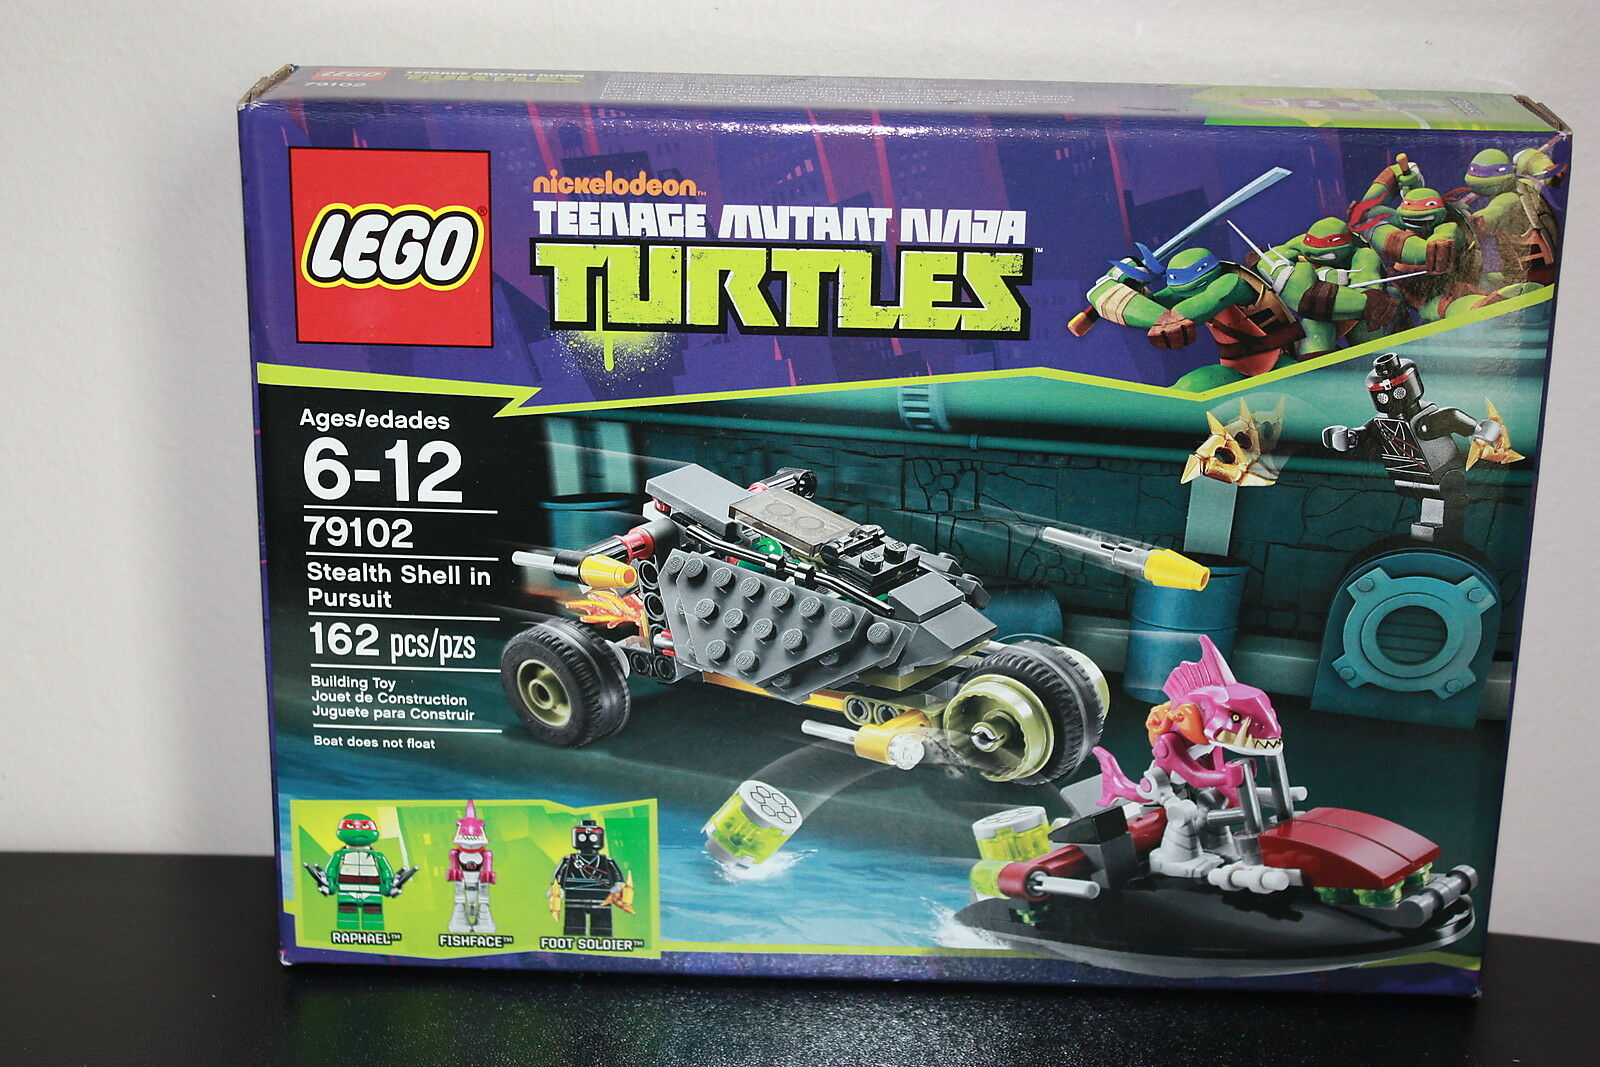 Lego Teenage Mutant Ninja Turtles 79102 79102 79102 Stealth Shell In Pursuit 162 Pieces 3eb9e7